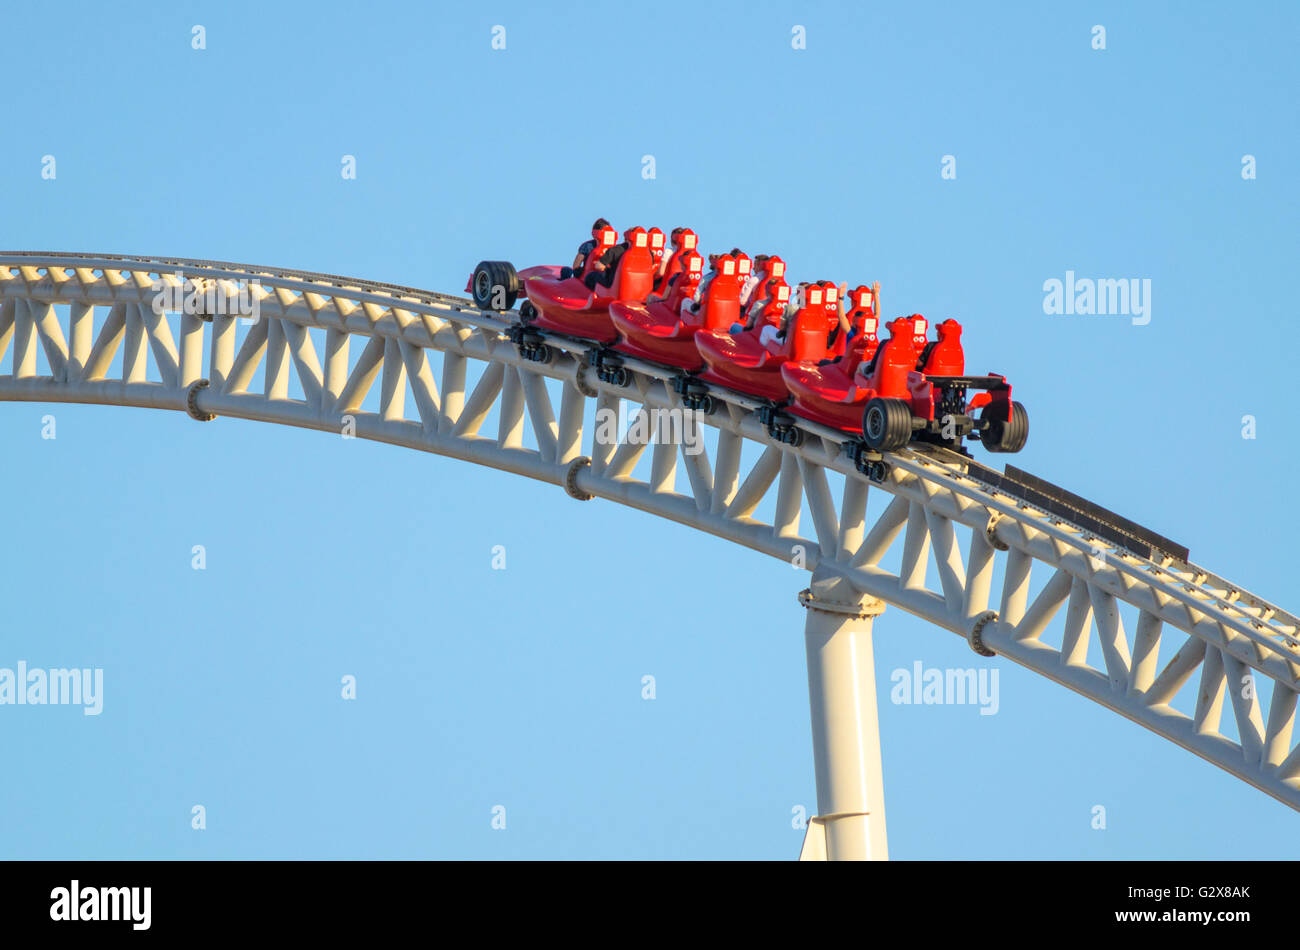 Formula Rossa, the fastest roller coaster in the world in Ferrari World at Yas Island. - Stock Image